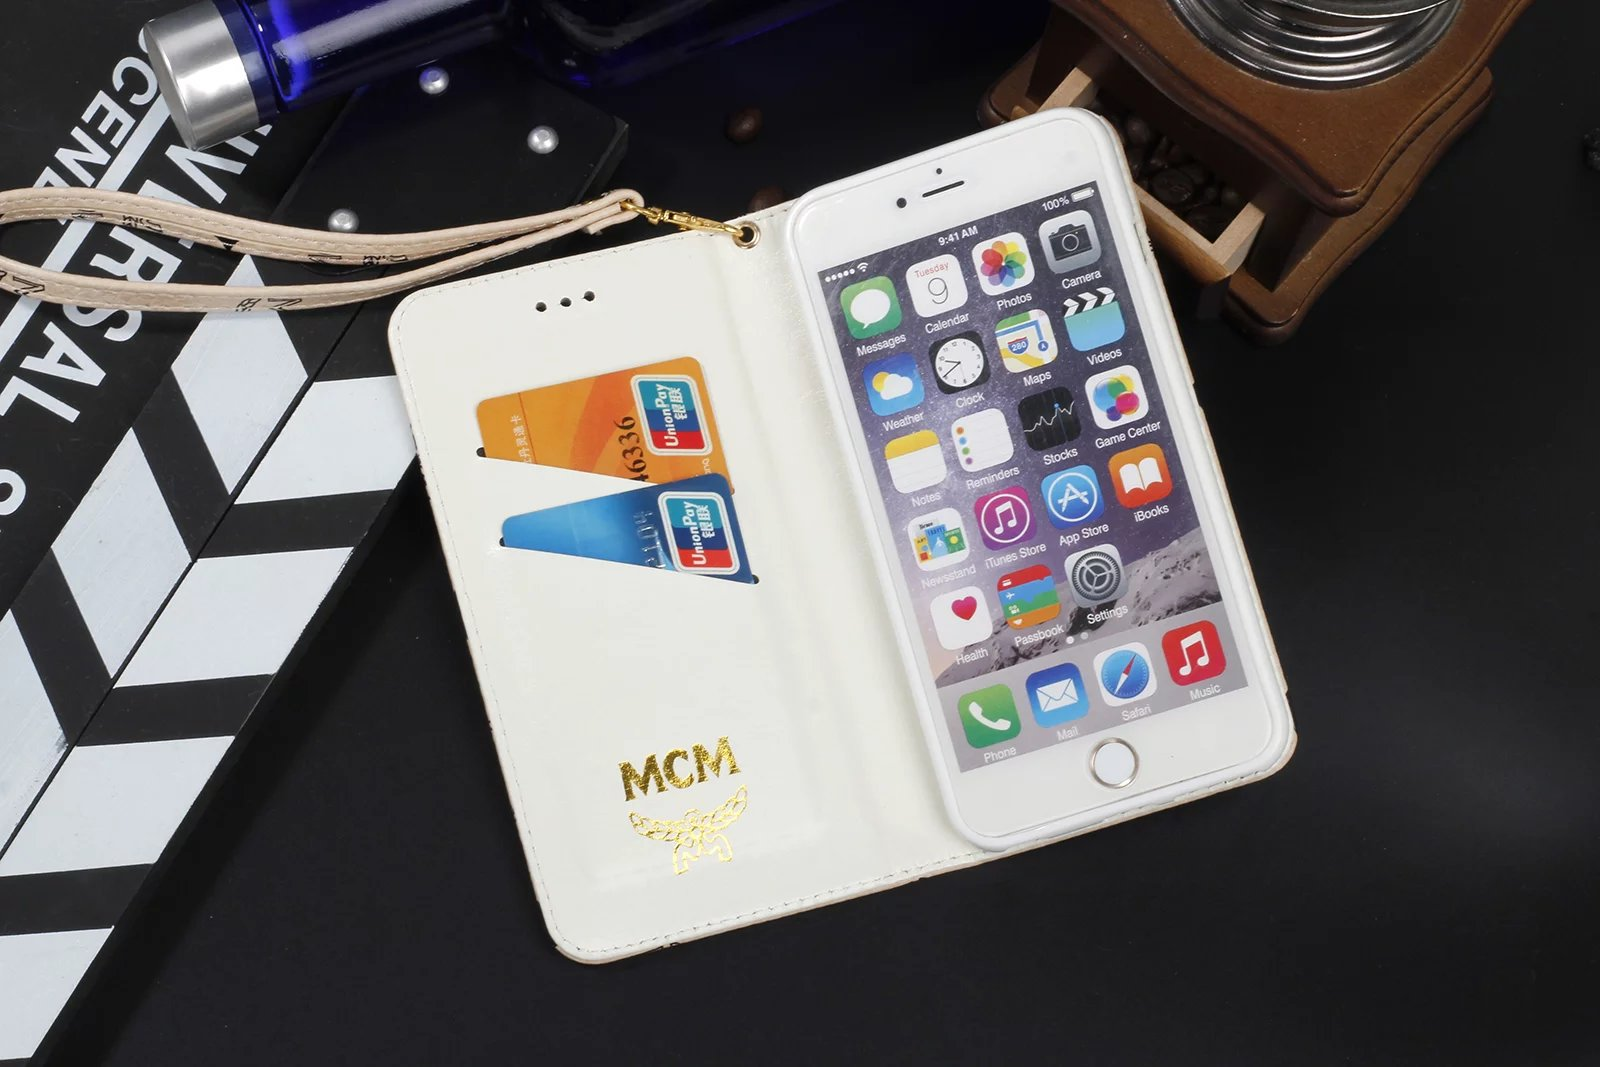 iphone 6 Plus case cover iphone cases 6 Plus s fashion iphone6 plus case best iphone cases 6 covers for cell phones leather cell phone cases mophie 6 juice pack plus iphone 6 covers apple store cell phone cases online